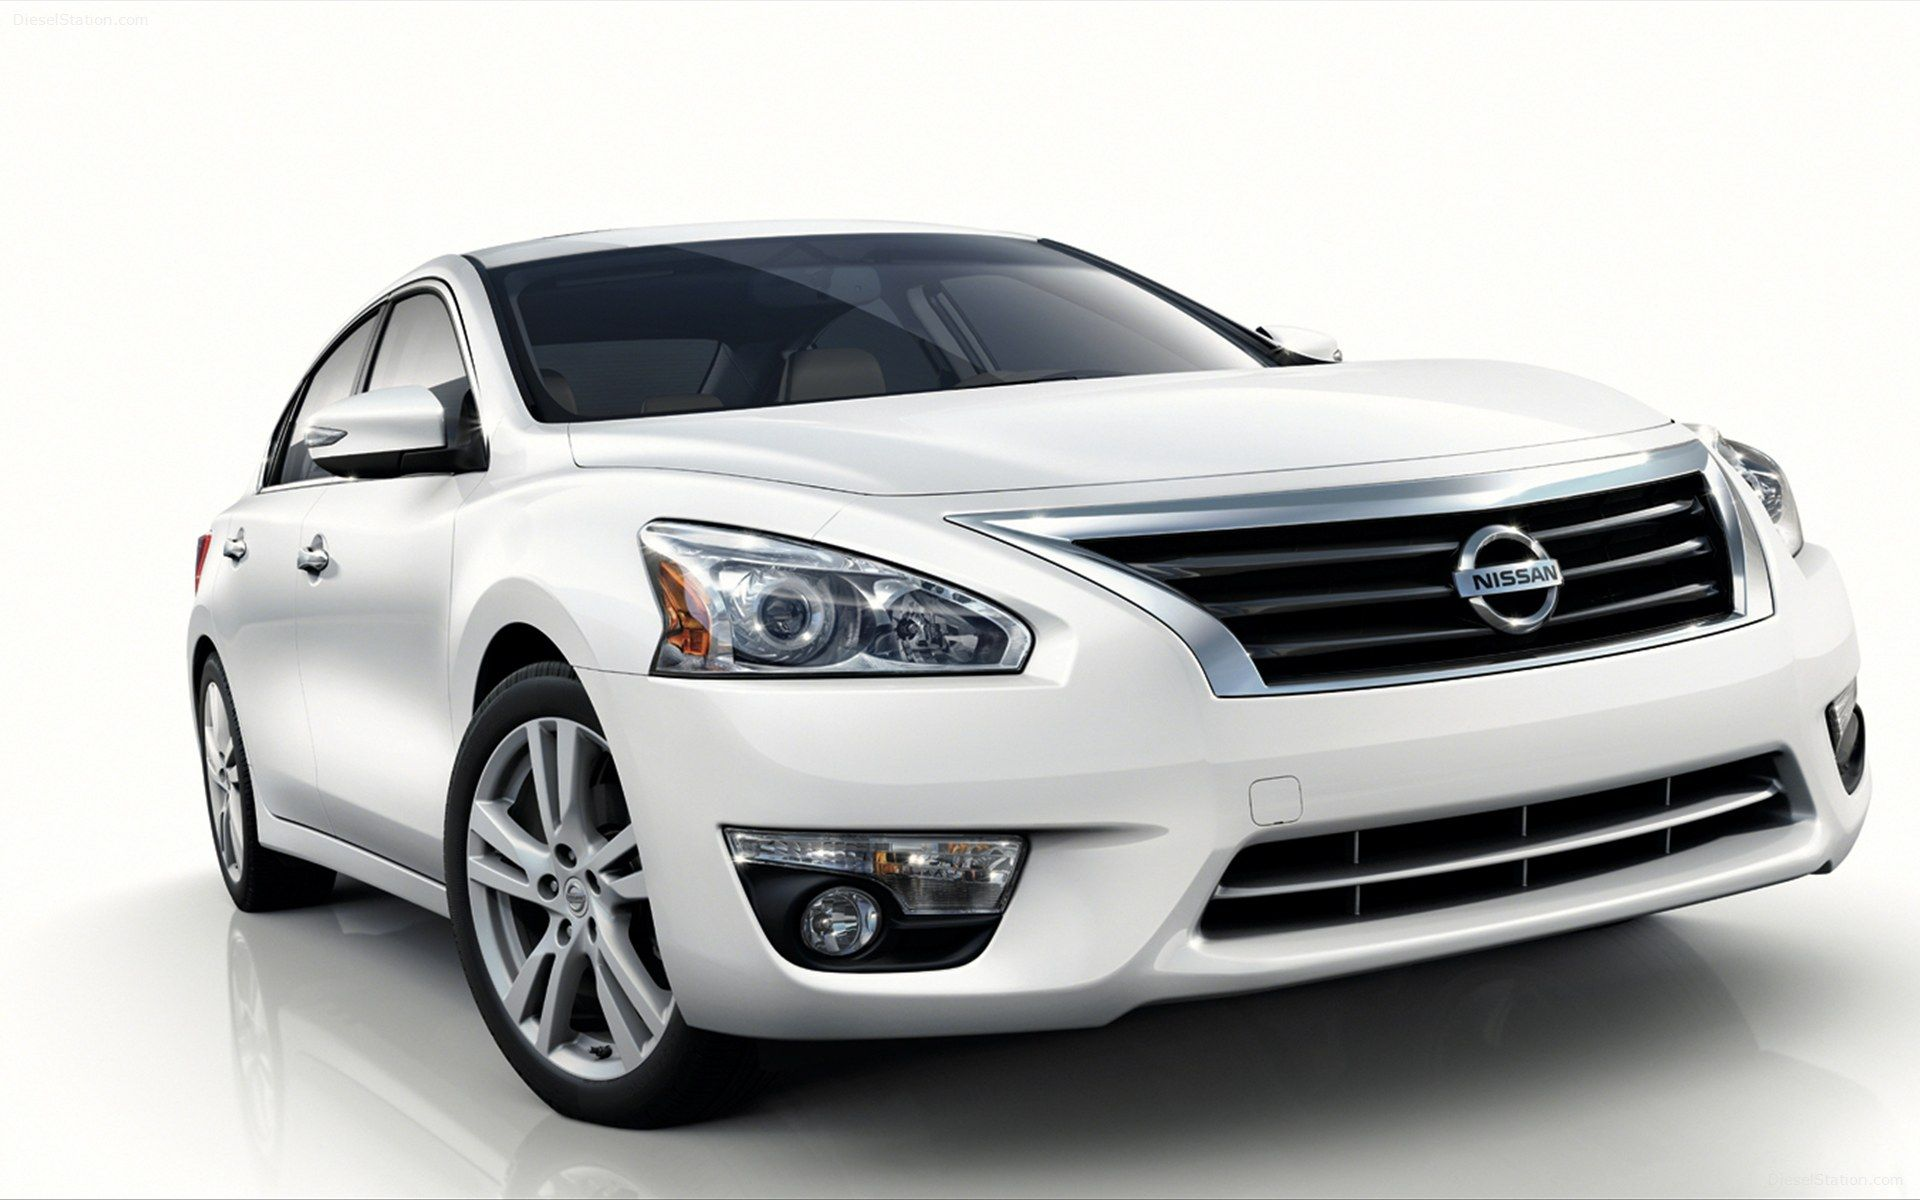 coupe review hybrid nissan engine interior exterior redesign color altima price